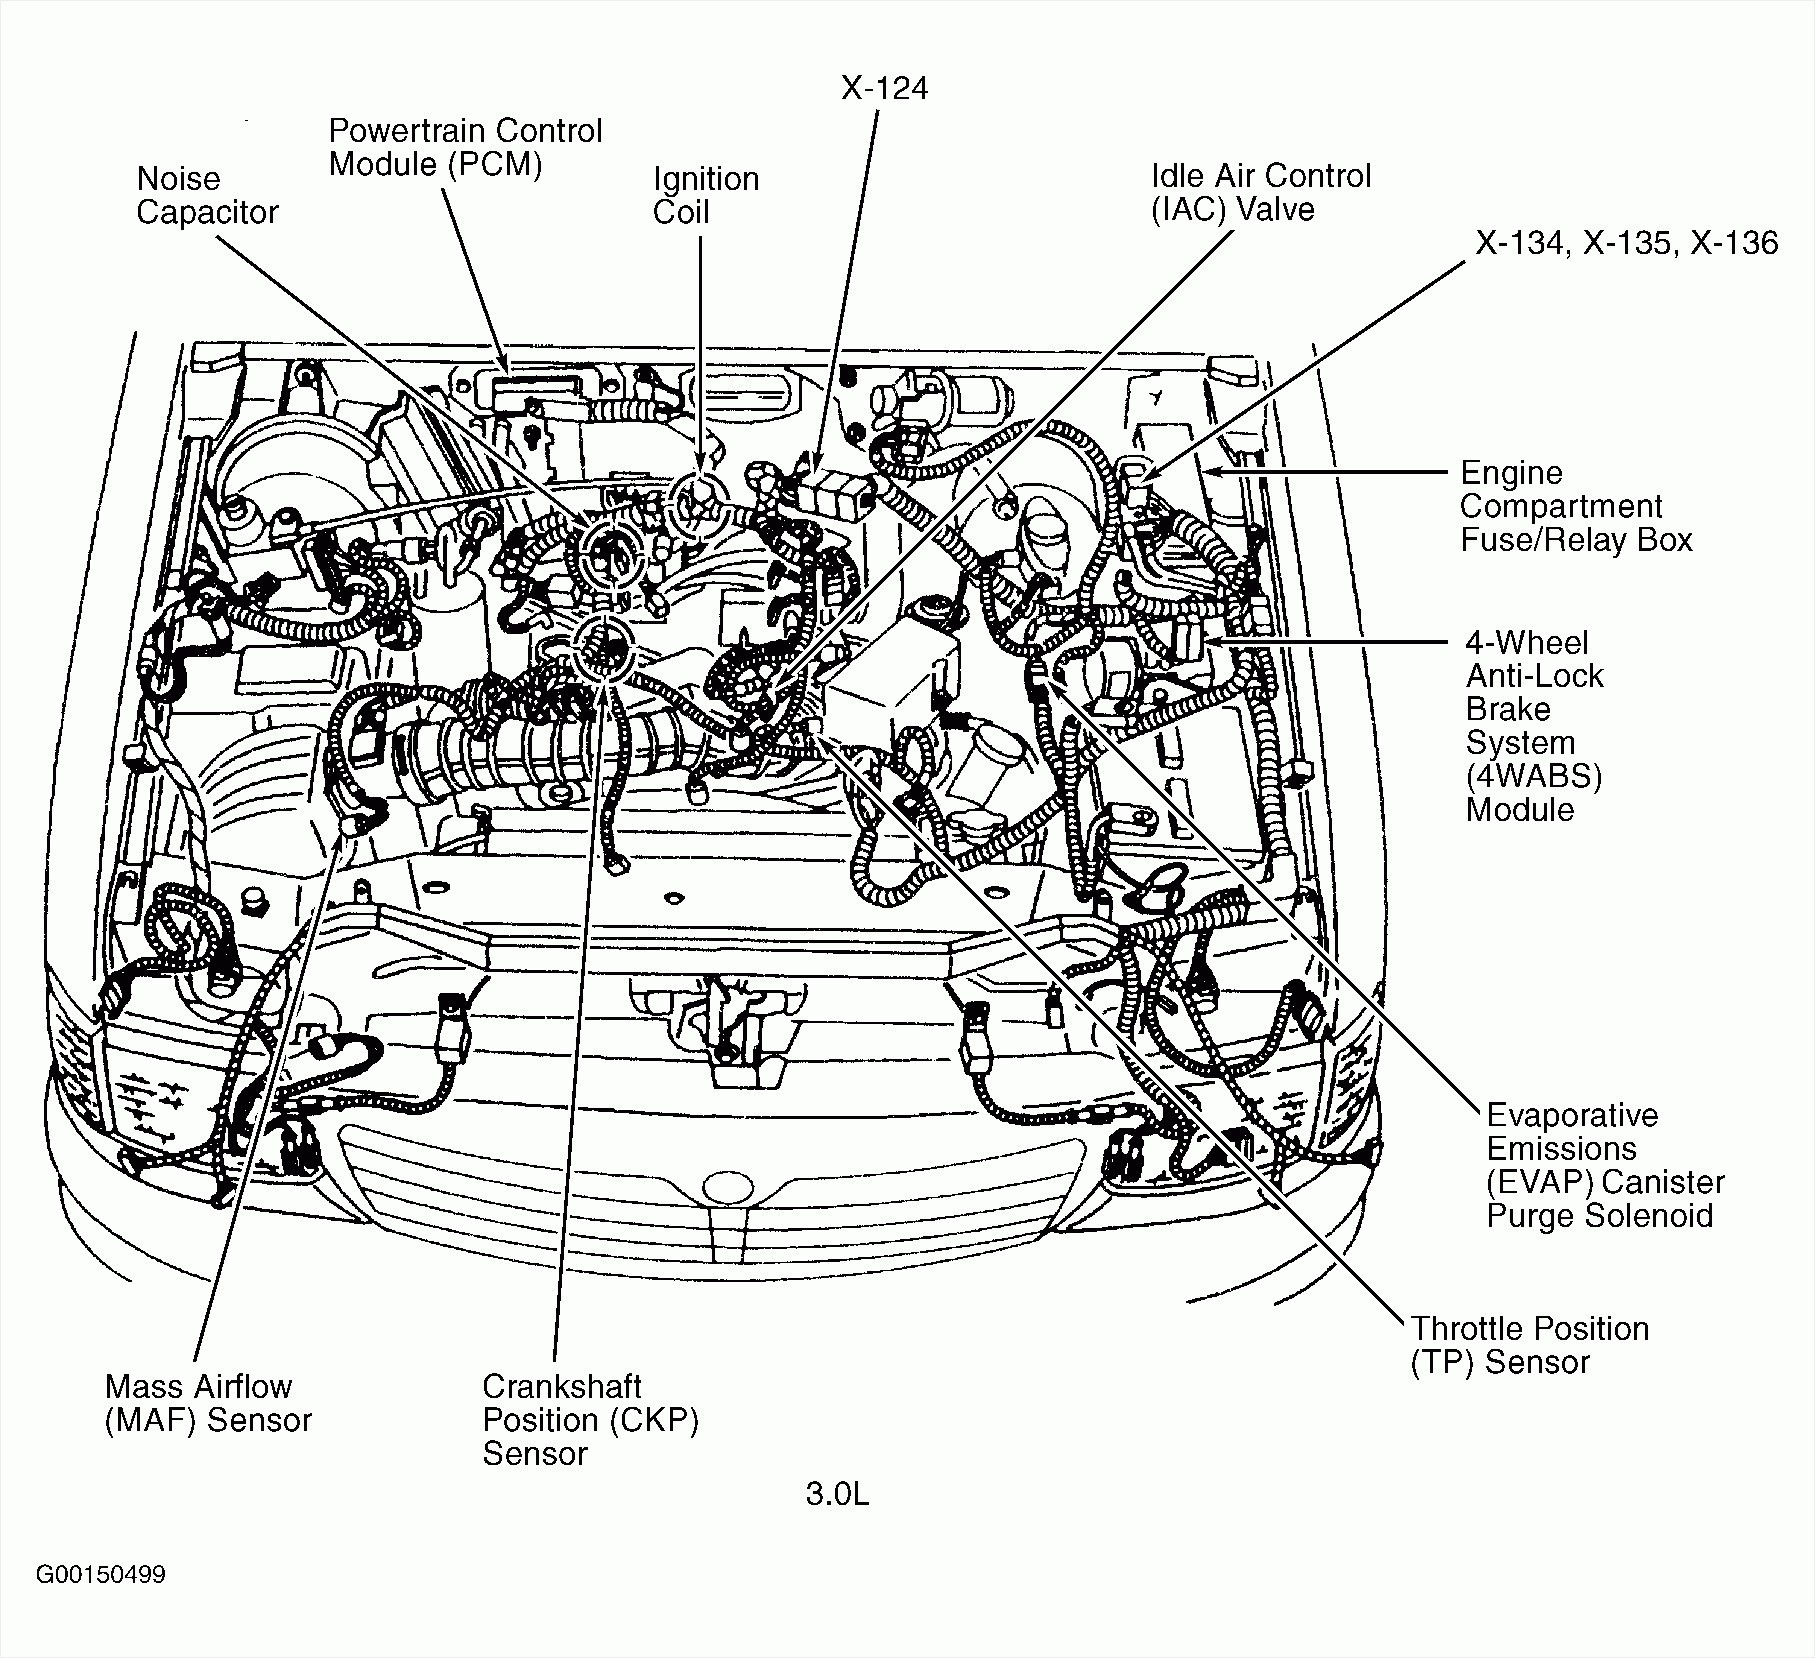 Mx Engine Bay Diagram Layout For Mazda Engine Wiring Diagrams E A Of Mx Engine Bay Diagram on gm map sensor location